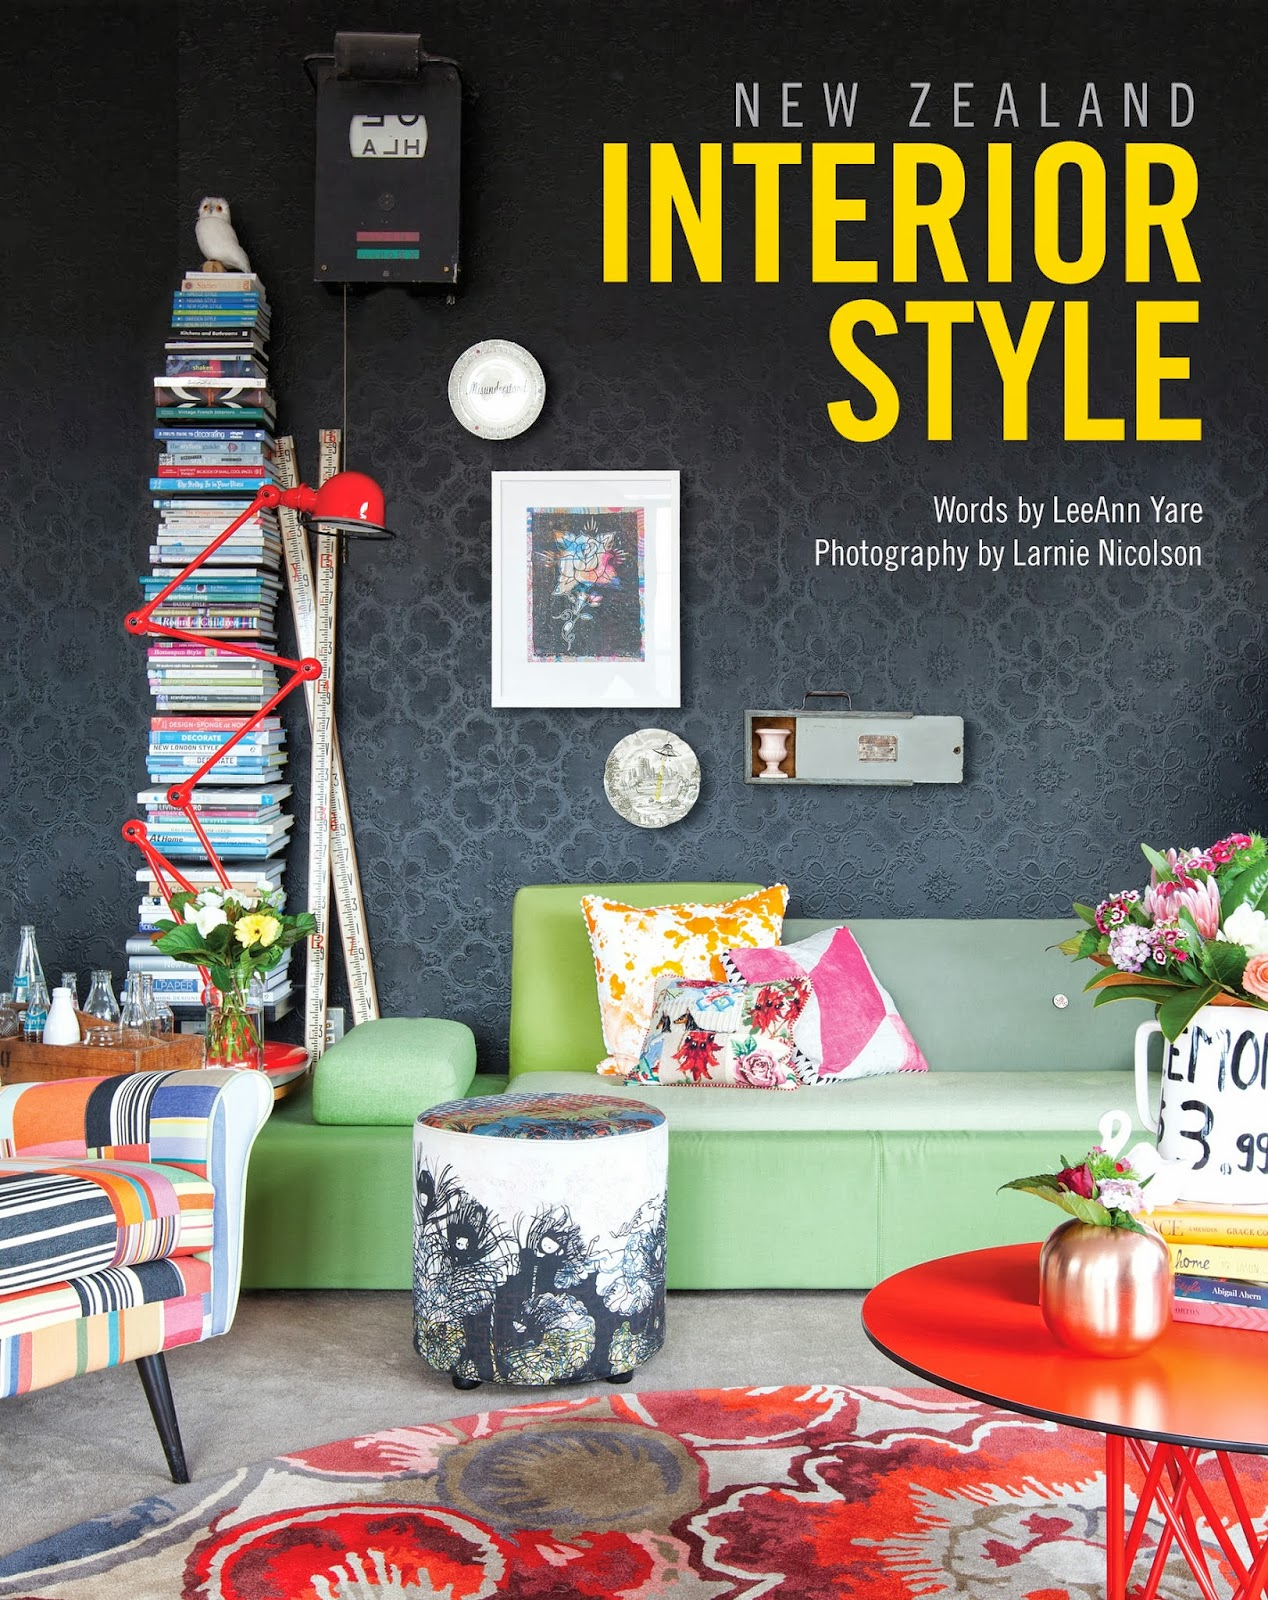 Its A Uniquely New Zealand Interior Design Based Coffee Table Book That Is Superbly Photographed By Larnie Nicolson And Handsomly Written LeeAnn Yare